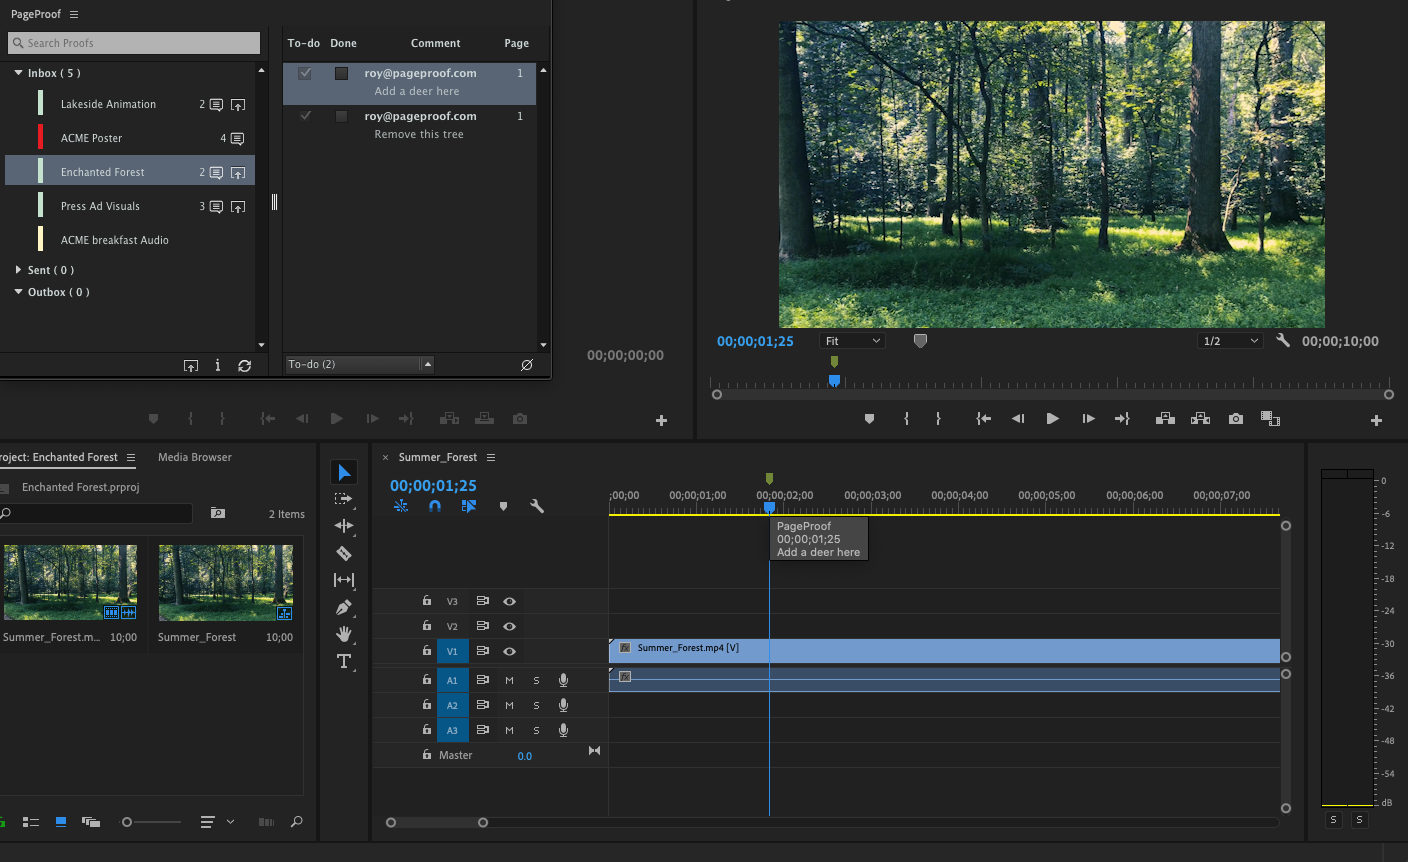 PageProof panel in Adobe Premiere Pro showing comments and their position on the timeline